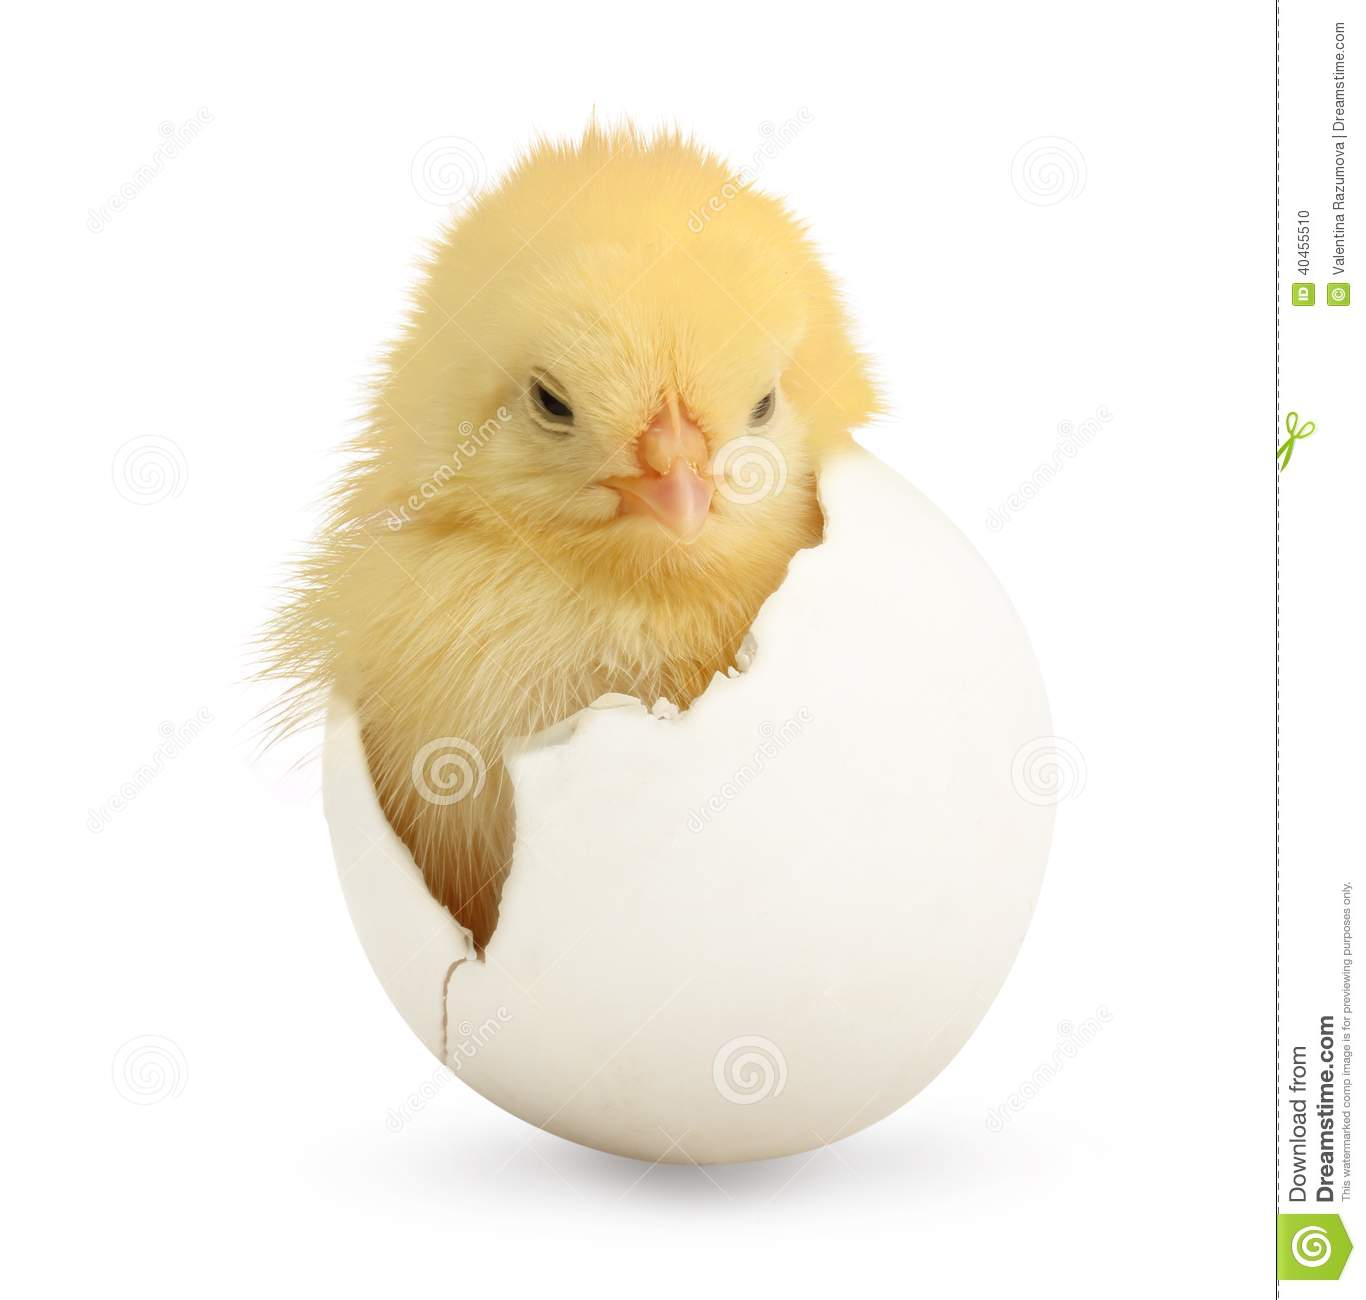 cute little chicken coming out of a white egg stock photo image of